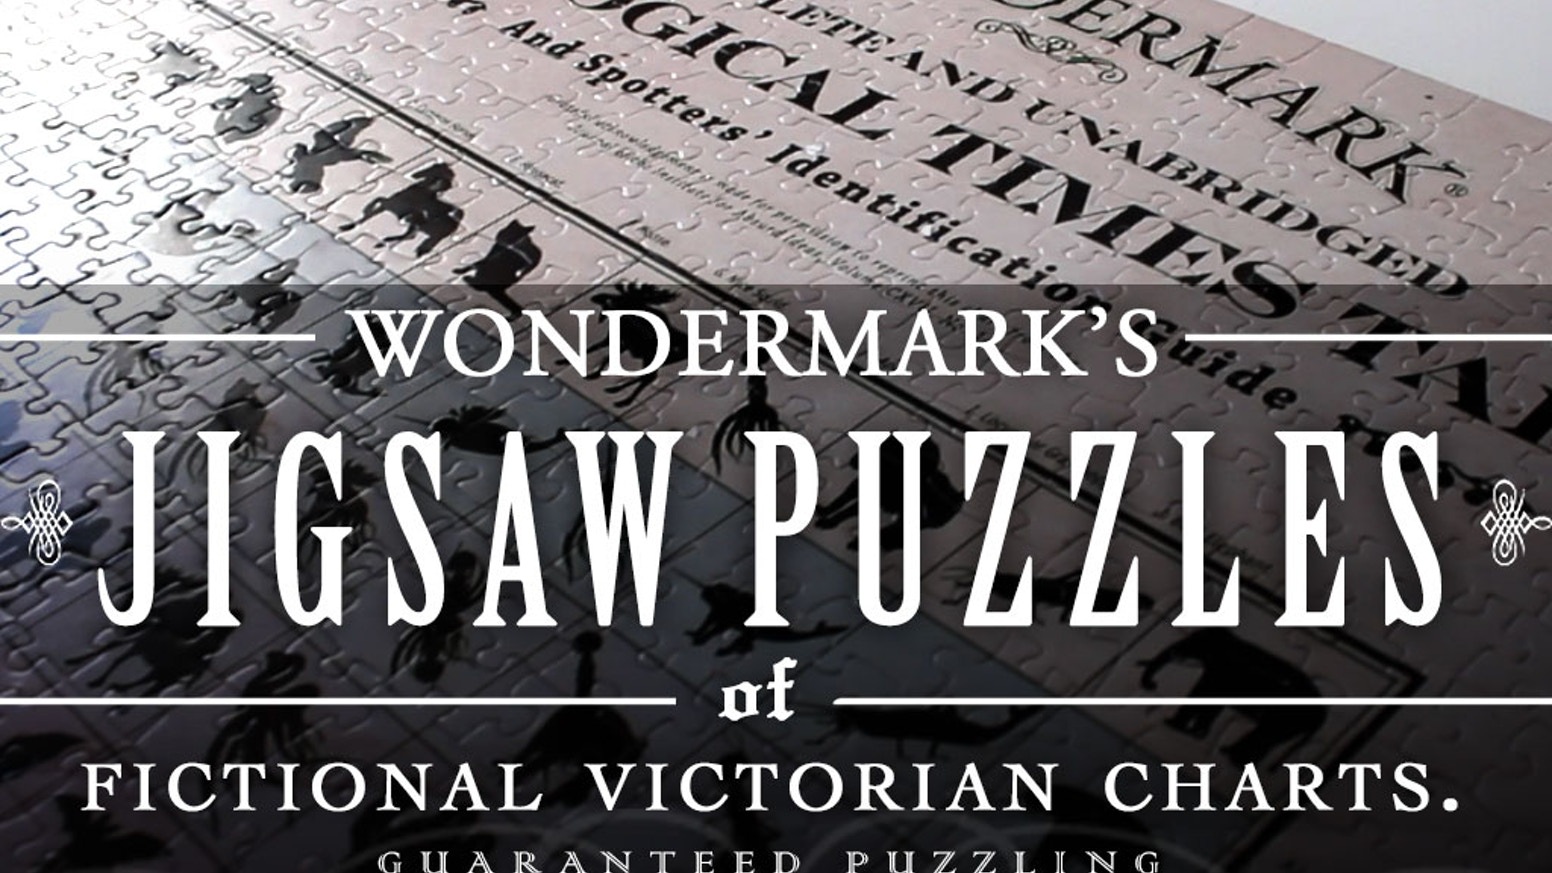 What if the Victorian era had more jokes AND was more diagram-based AND was made of jigsaw puzzles??   WONDER...NO MORE